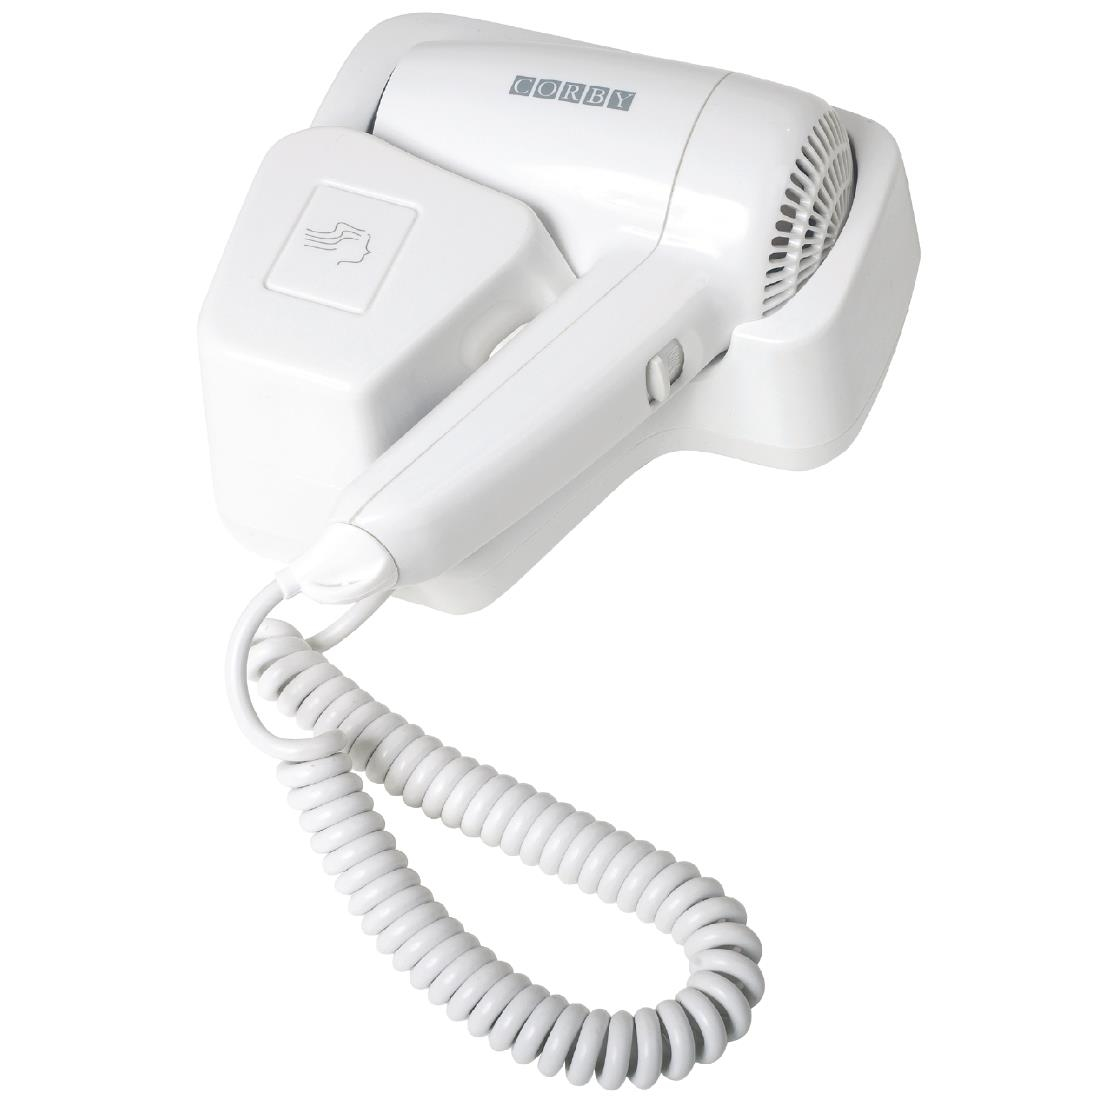 Image of Corby Wall Hair Dryer